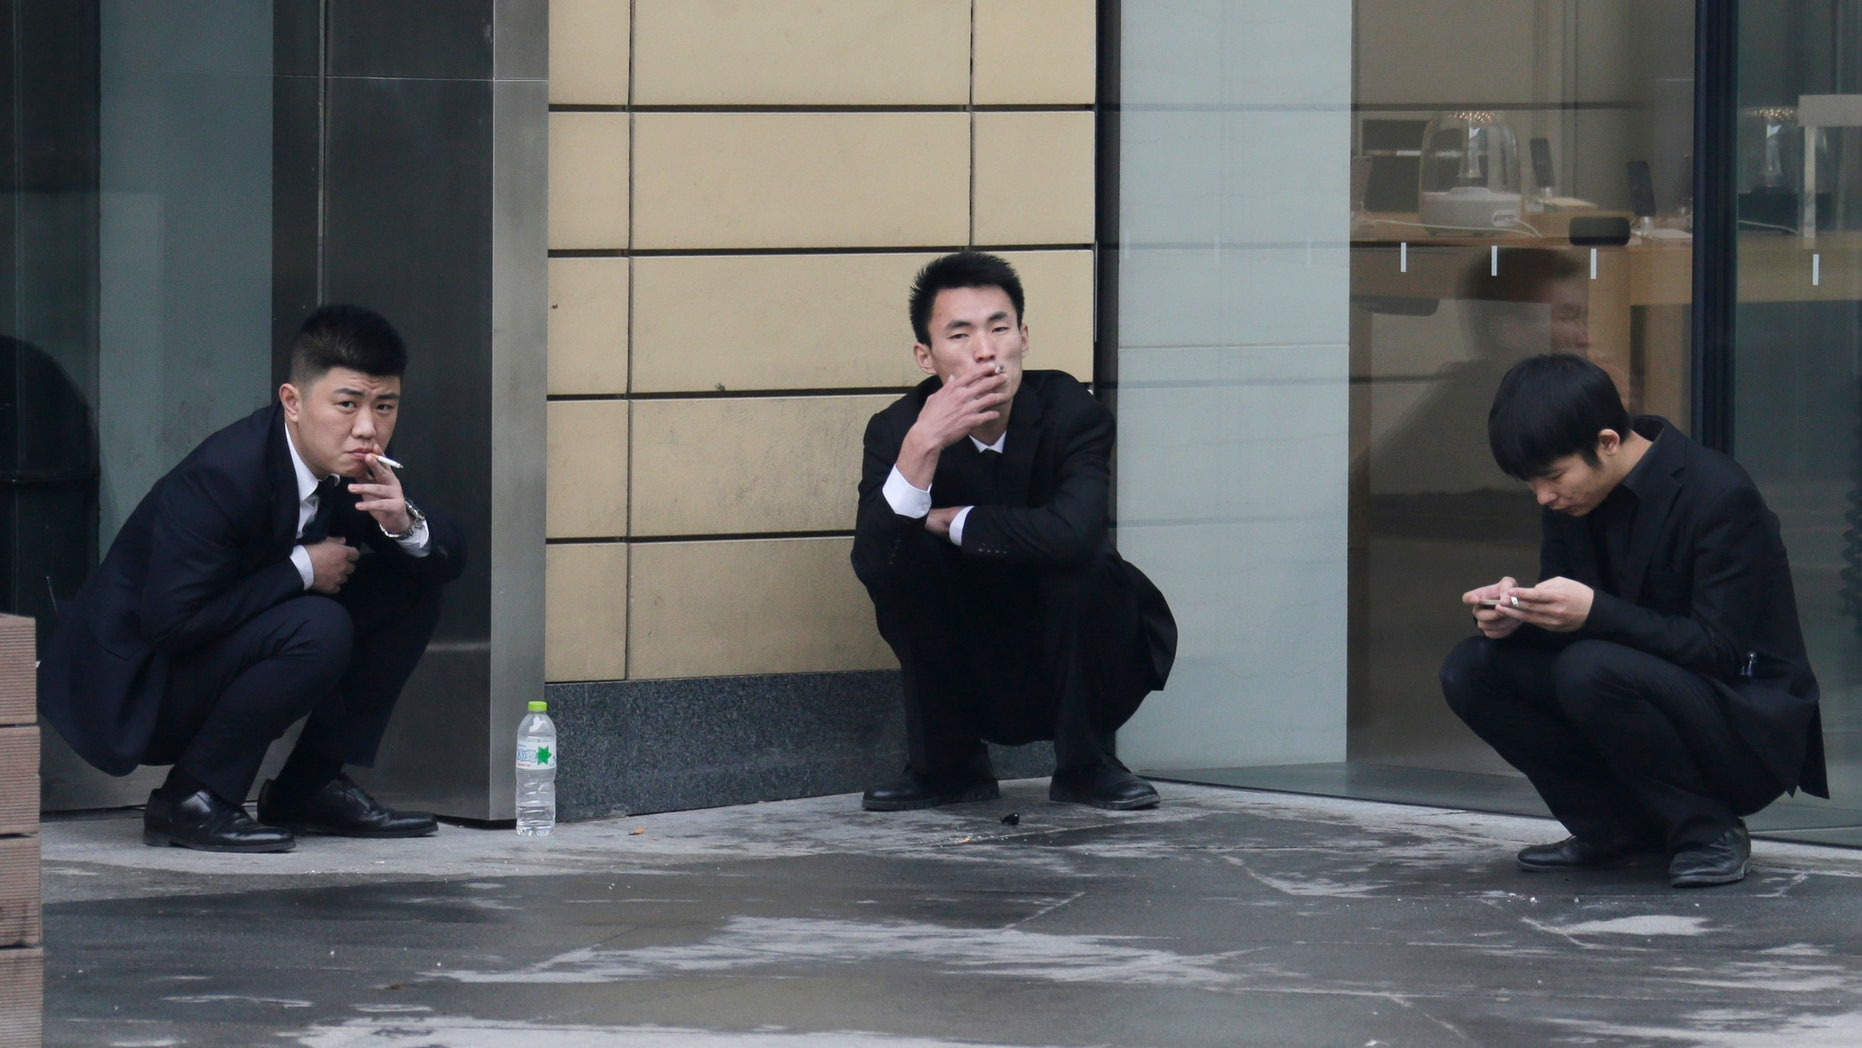 Employees smoke outside an office building in Beijing, November 25, 2014. REUTERS/Jason Lee